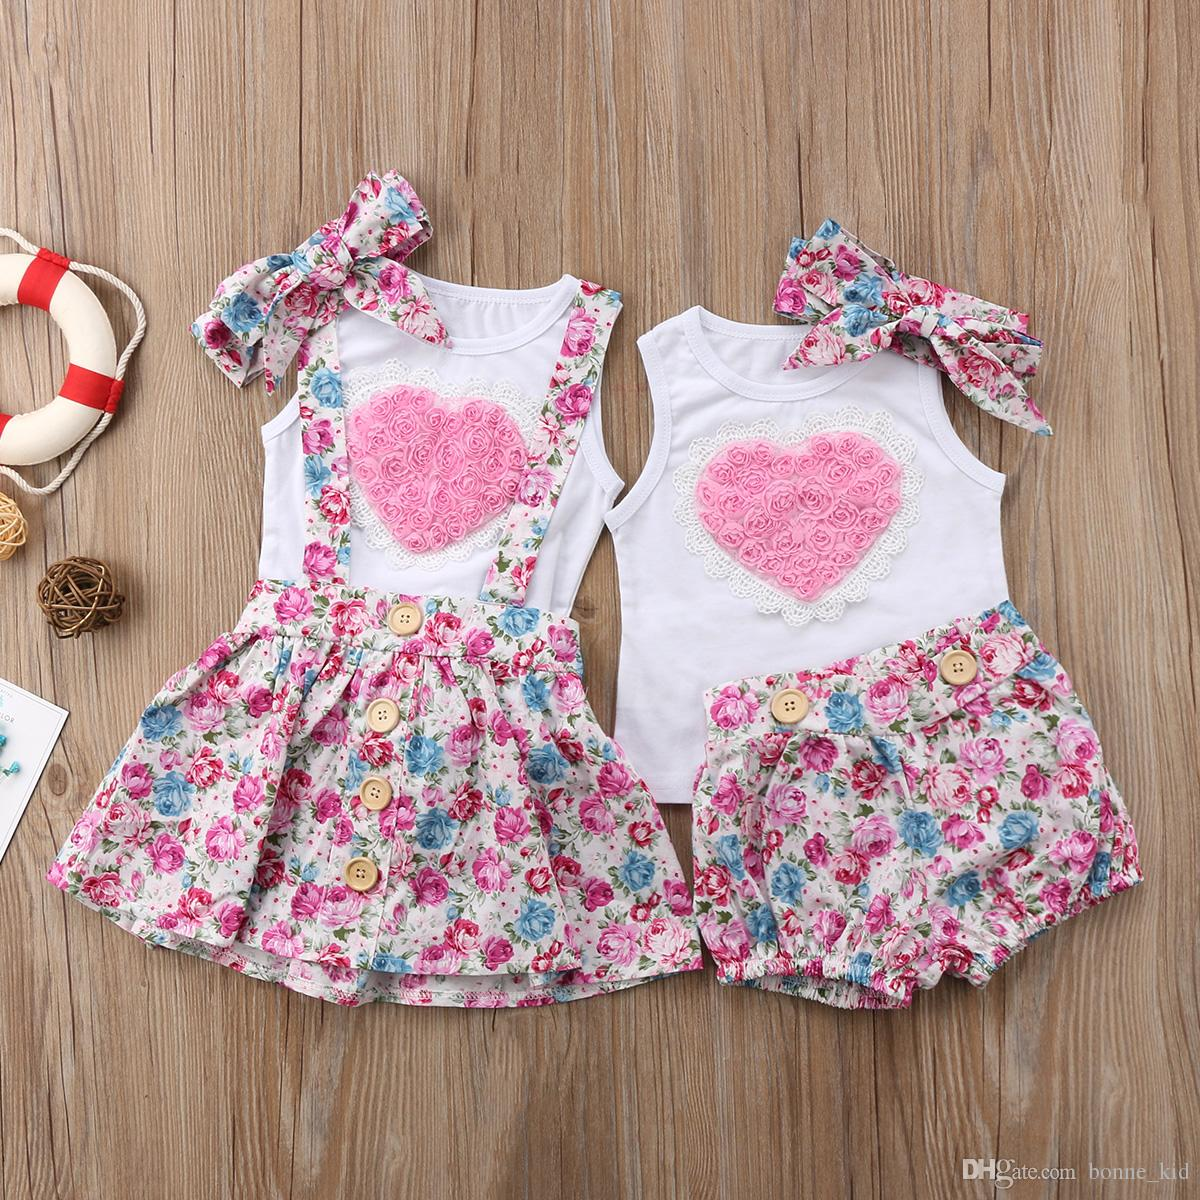 New Fashion 2018 Neew Fashion Purple Floral Newborn Baby Girl Sister Matching Outfits Clothes Jumpsuit Romper Dresses Cute Sweet Pretty Mother & Kids